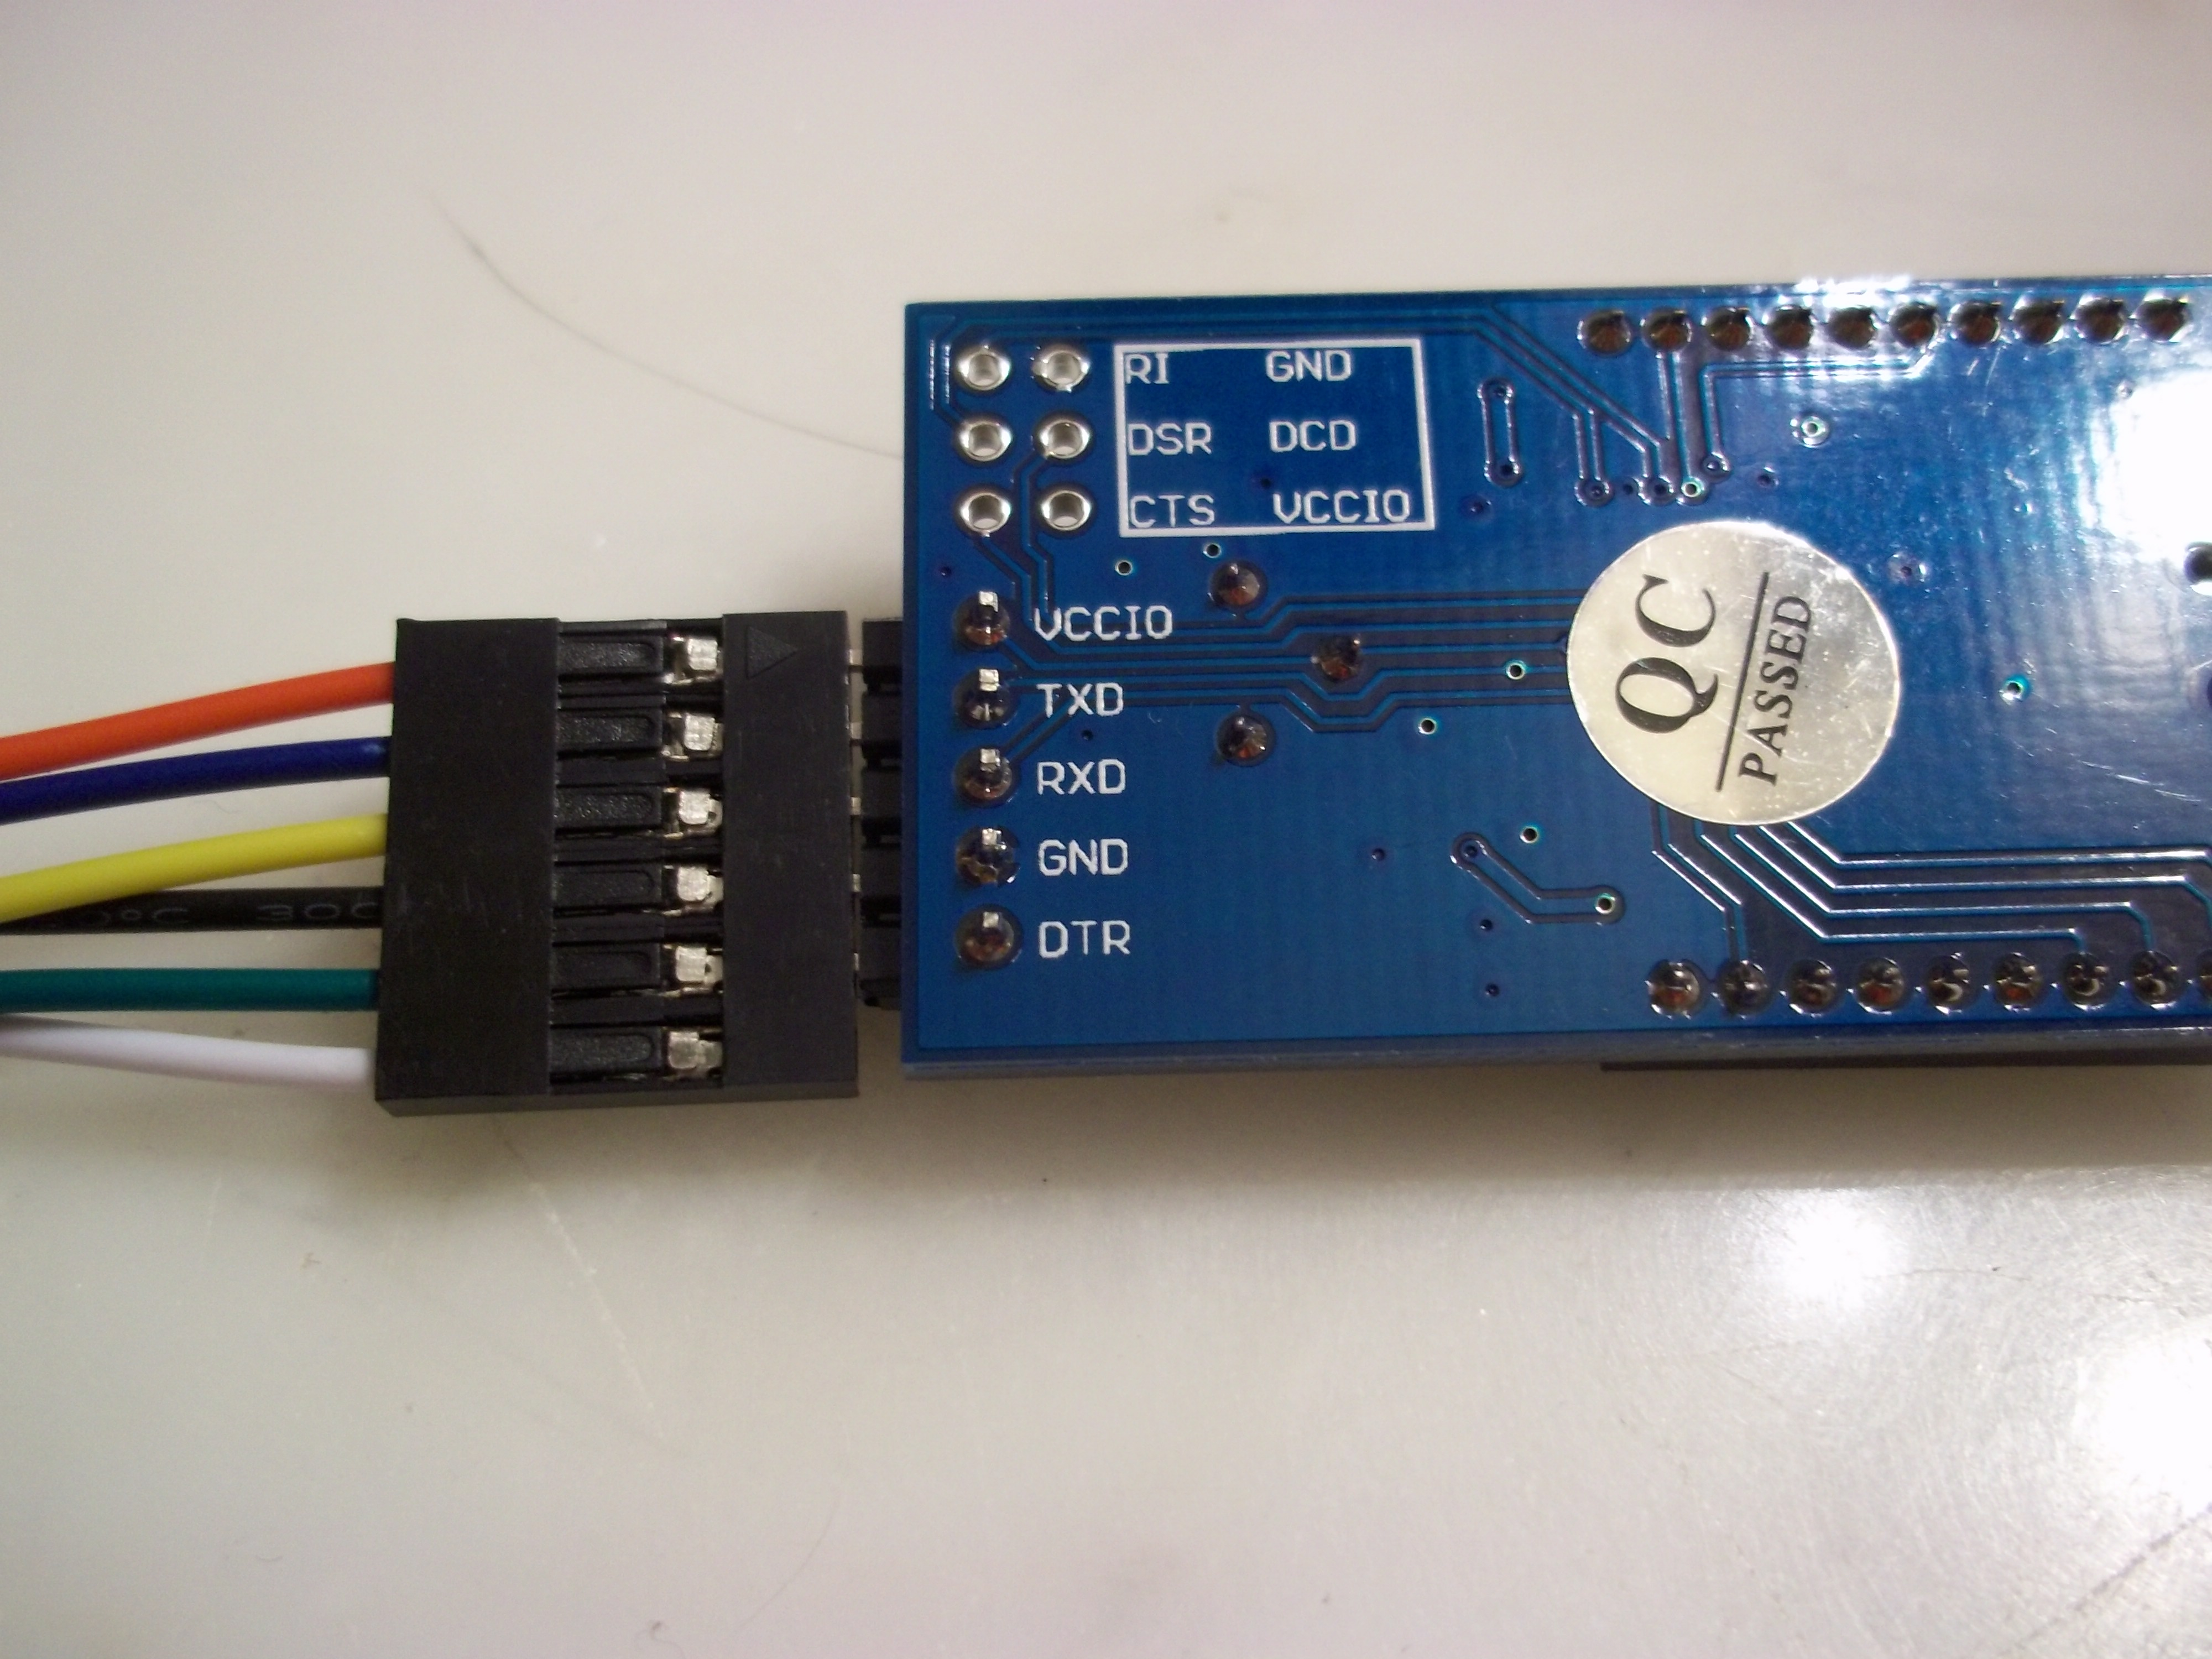 Ftdi Programmer For The Arduino Pro On Cheaper Tech Spin Usb Serial Cable Wiring Diagram Foca Pinout